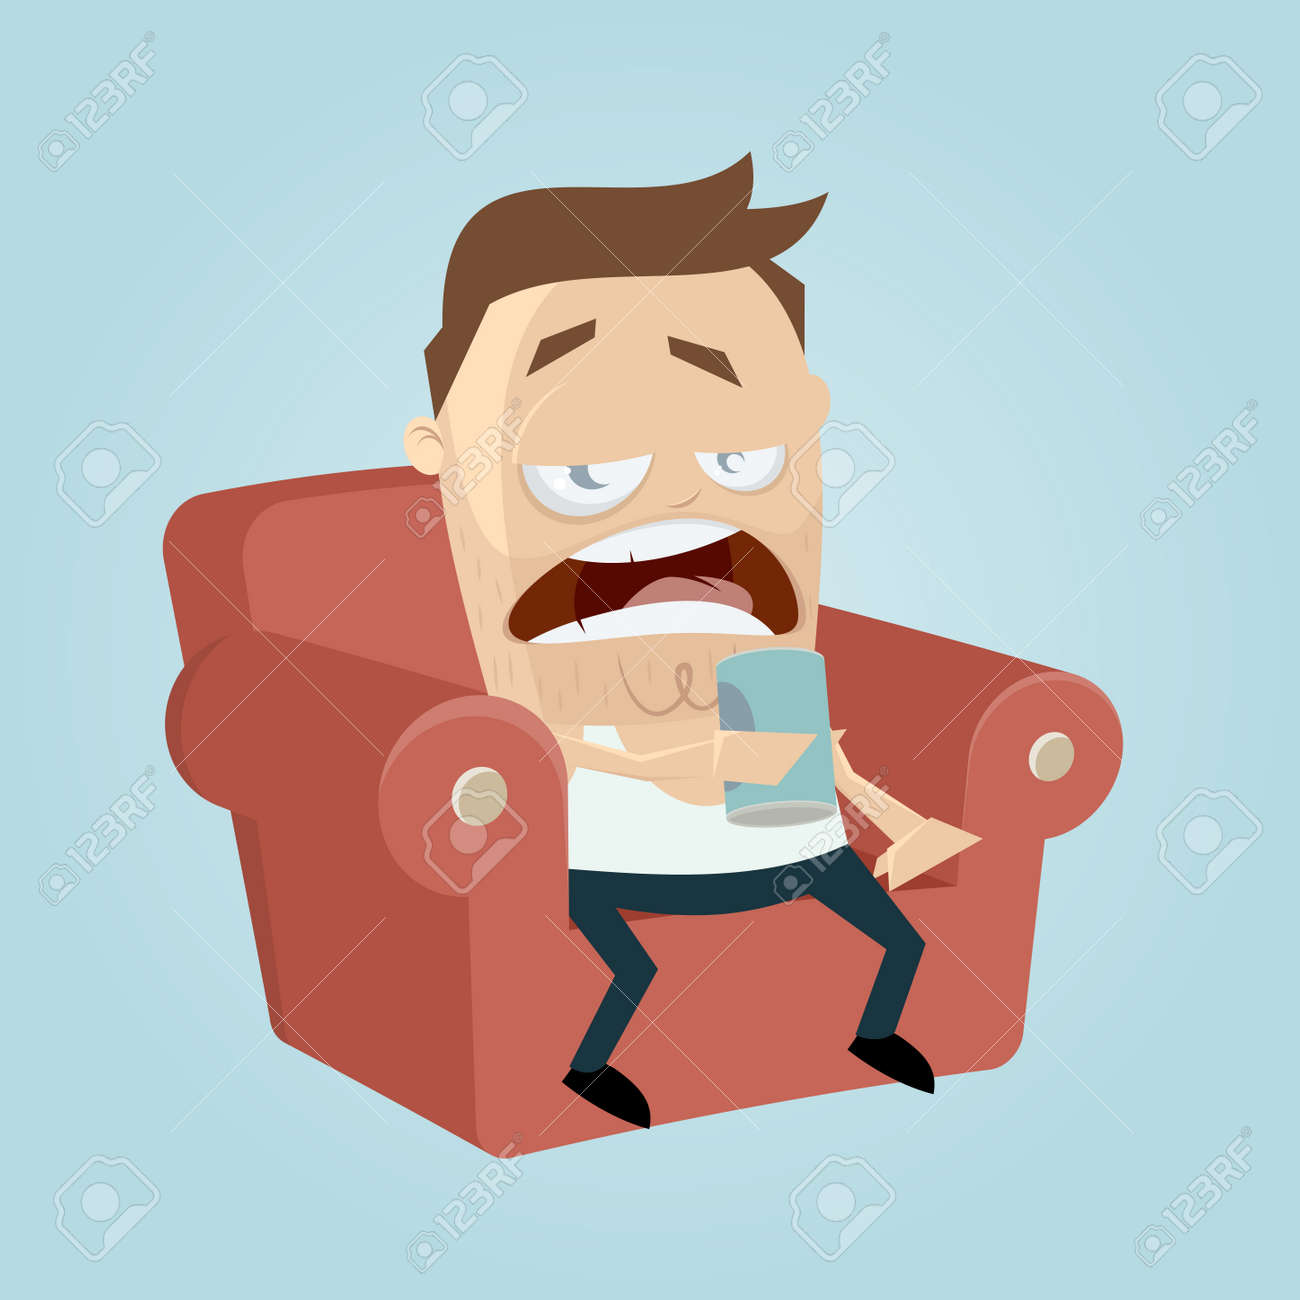 hight resolution of clipart of a bored man sitting on the sofa and drinking beer of a can stock